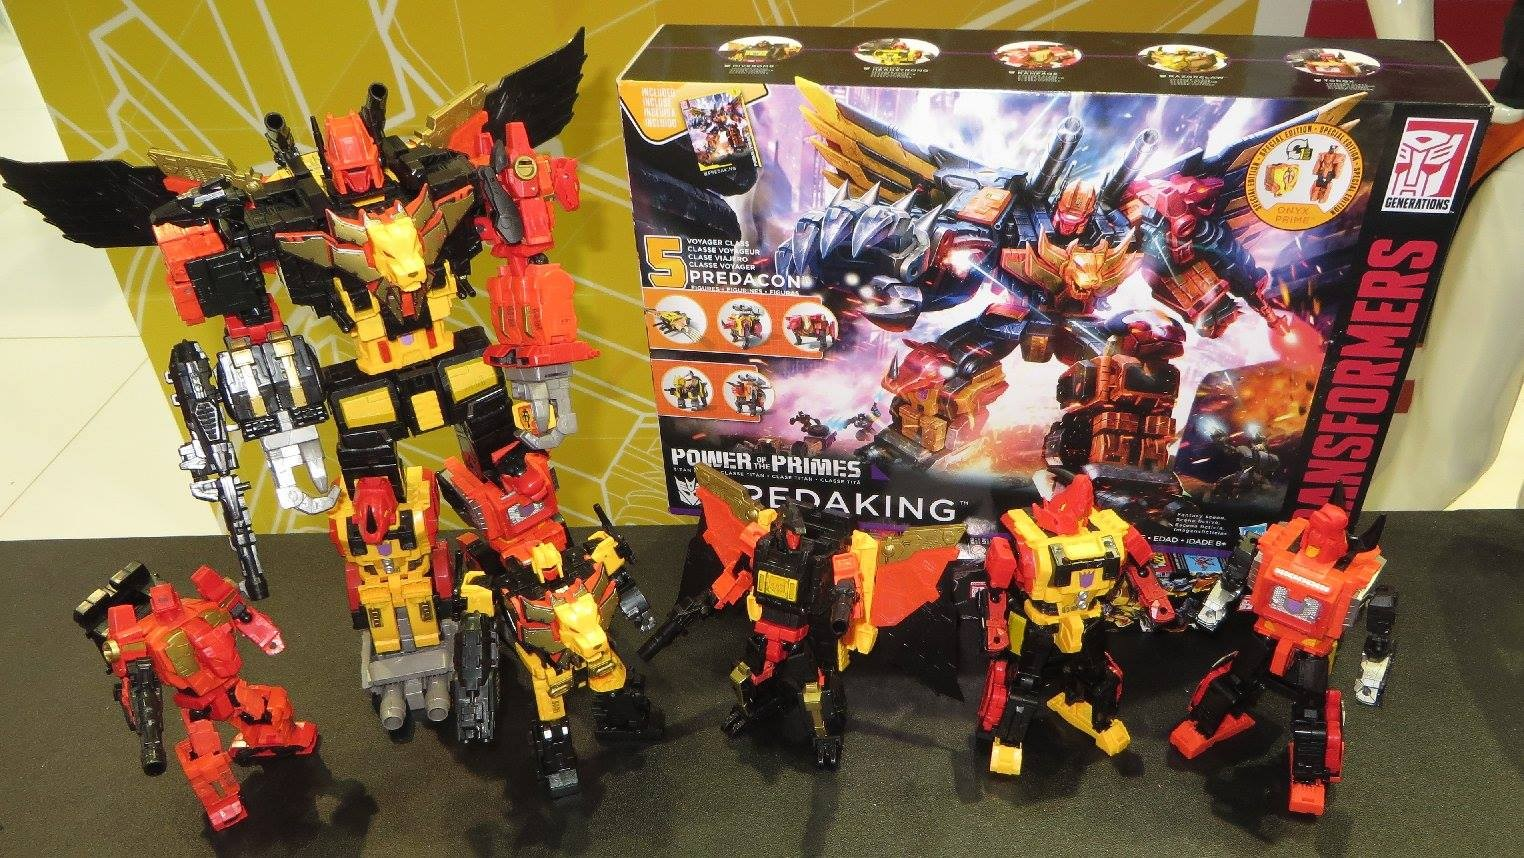 Transformers News: Transformers Power of the Primes Predaking On Display at Australian Toy Fair with G1 Self